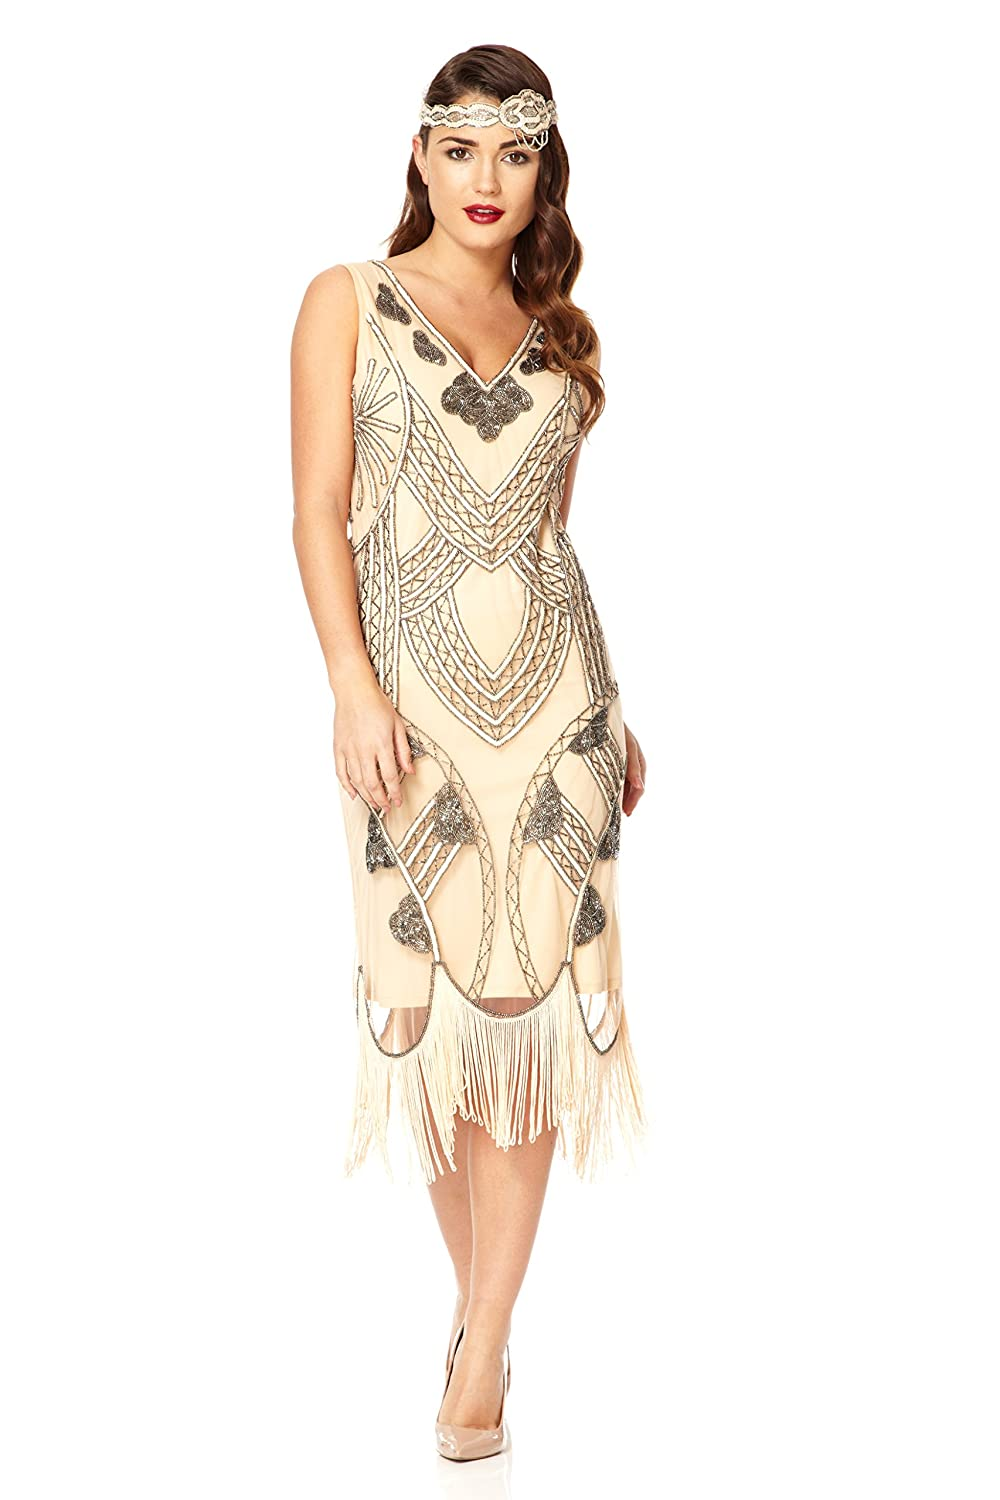 1920s Plus Size Flapper Dresses, Gatsby Dresses, Flapper Costumes Juliet Vintage Inspired Fringe Dress in Nude Blush $115.70 AT vintagedancer.com